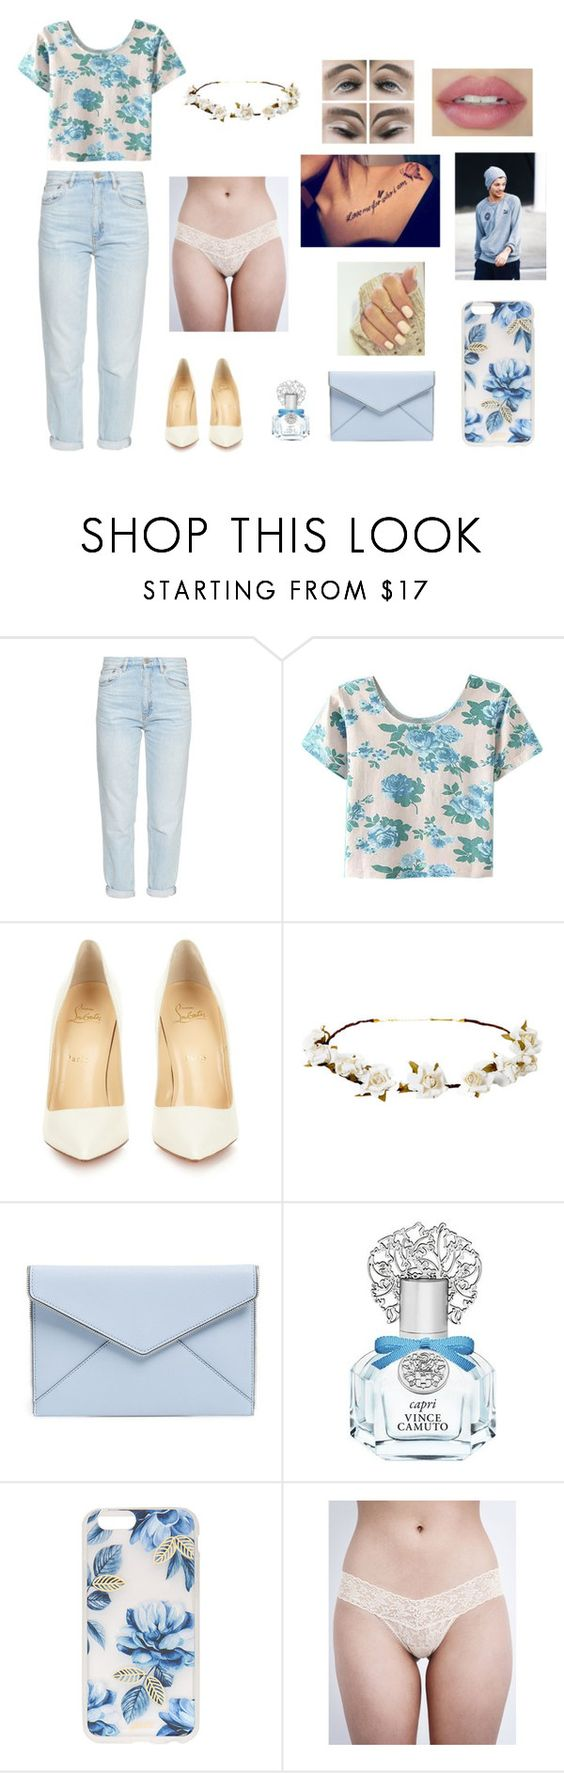 """Louis Tomlinson the cross dresser Pt. 11"" by crazy-for-1d-5sos ❤ liked on Polyvore featuring M.i.h Jeans, WithChic, Christian Louboutin, Cult Gaia, Rebecca Minkoff, Vince Camuto, Sonix and Hanky Panky"